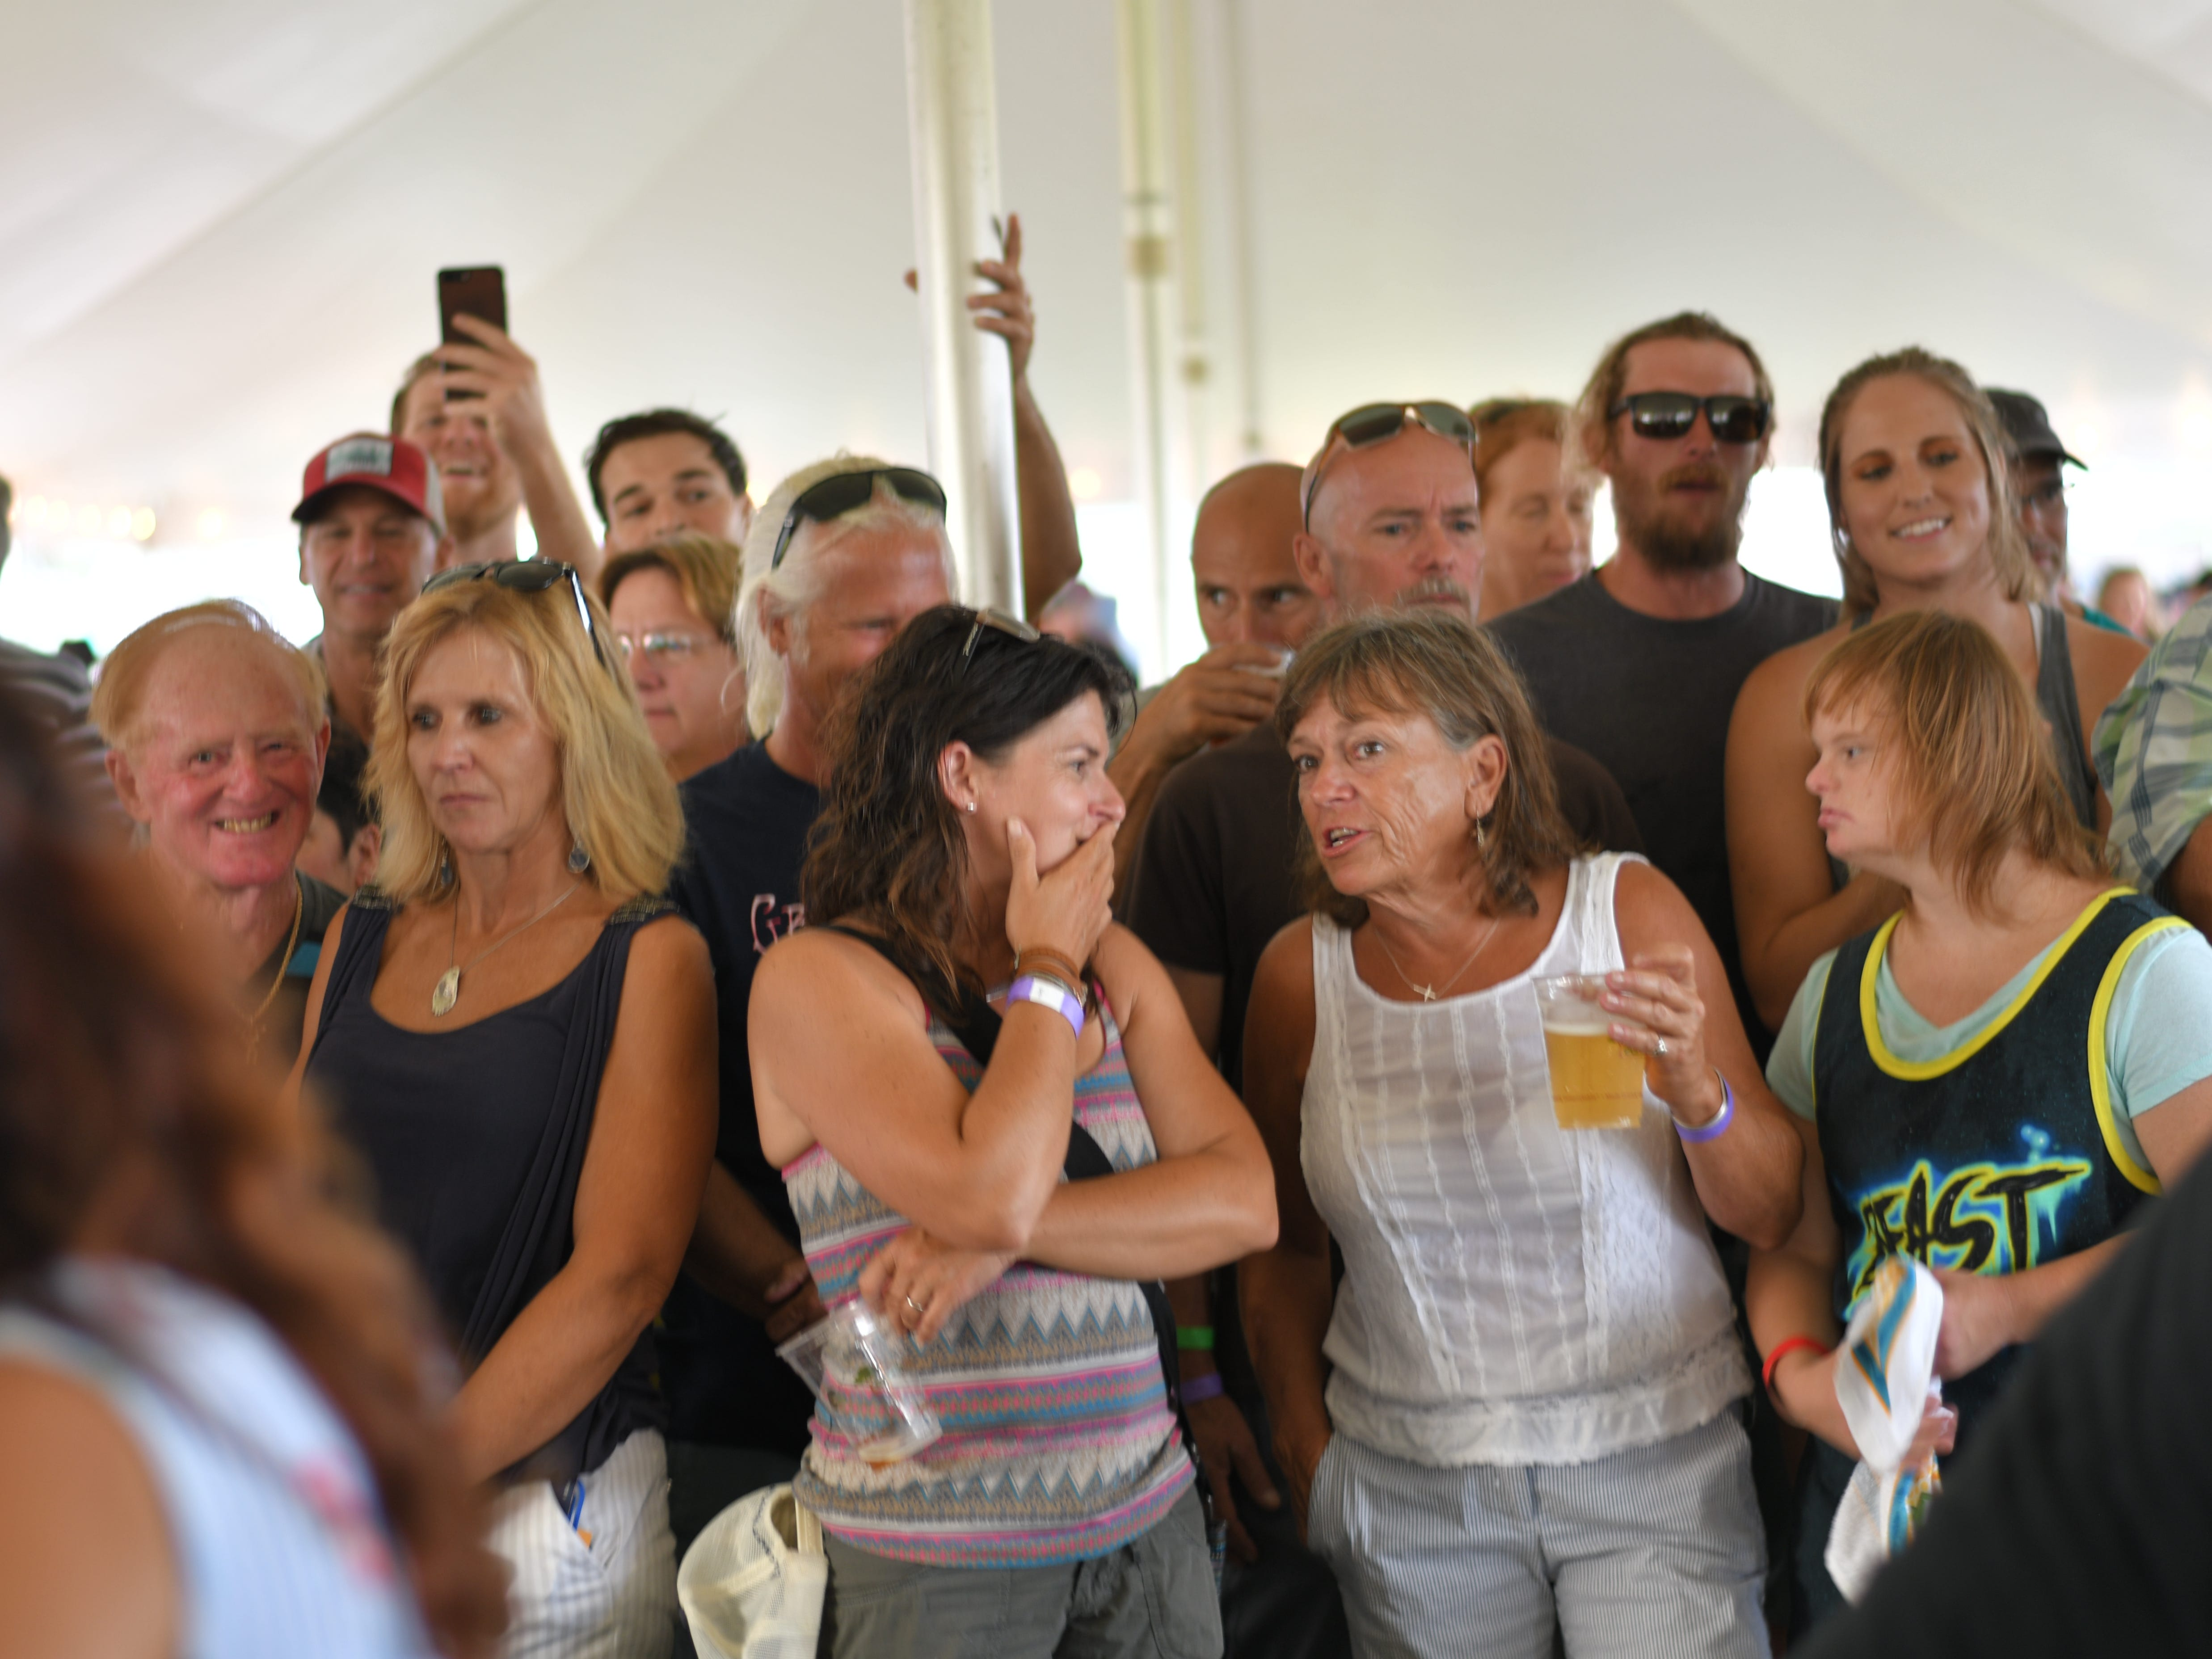 A crowd watches the contestants shuck and suck oysters at the contest in Cape Charles.